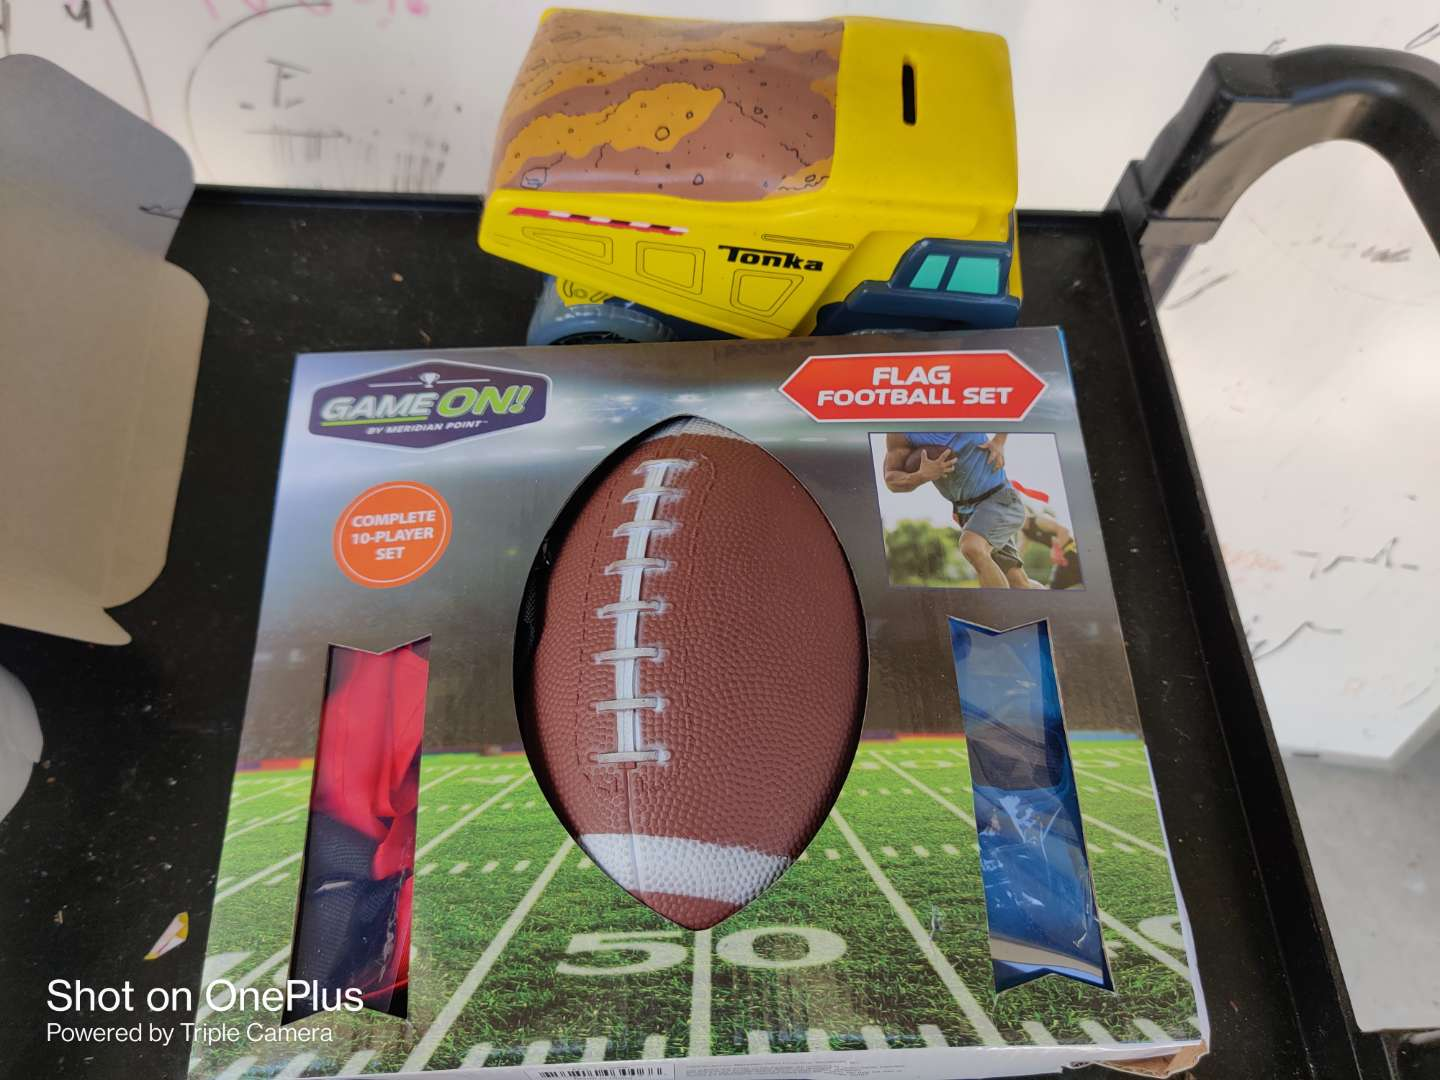 444 two pieces flag football set flags and ball and a Tonka truck Bank porcelain